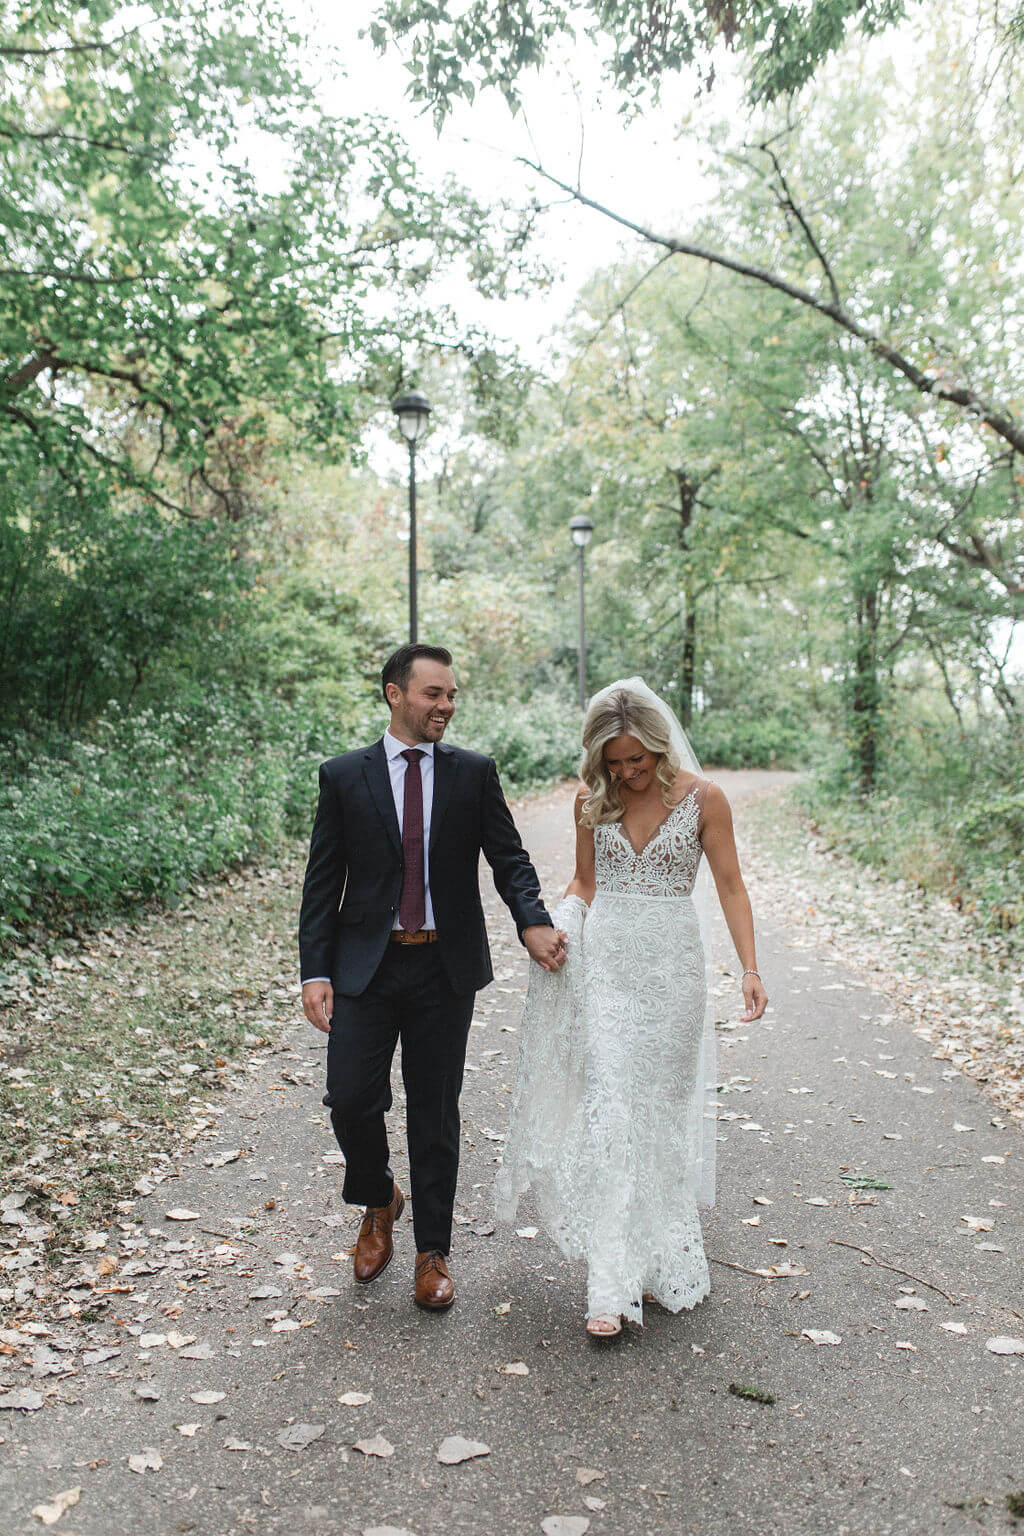 Ashley and Tom | Mariah Brink Photo | Hyland Hills Wedding | Sixpence MN wedding planner | Normandale Lake wedding pictures